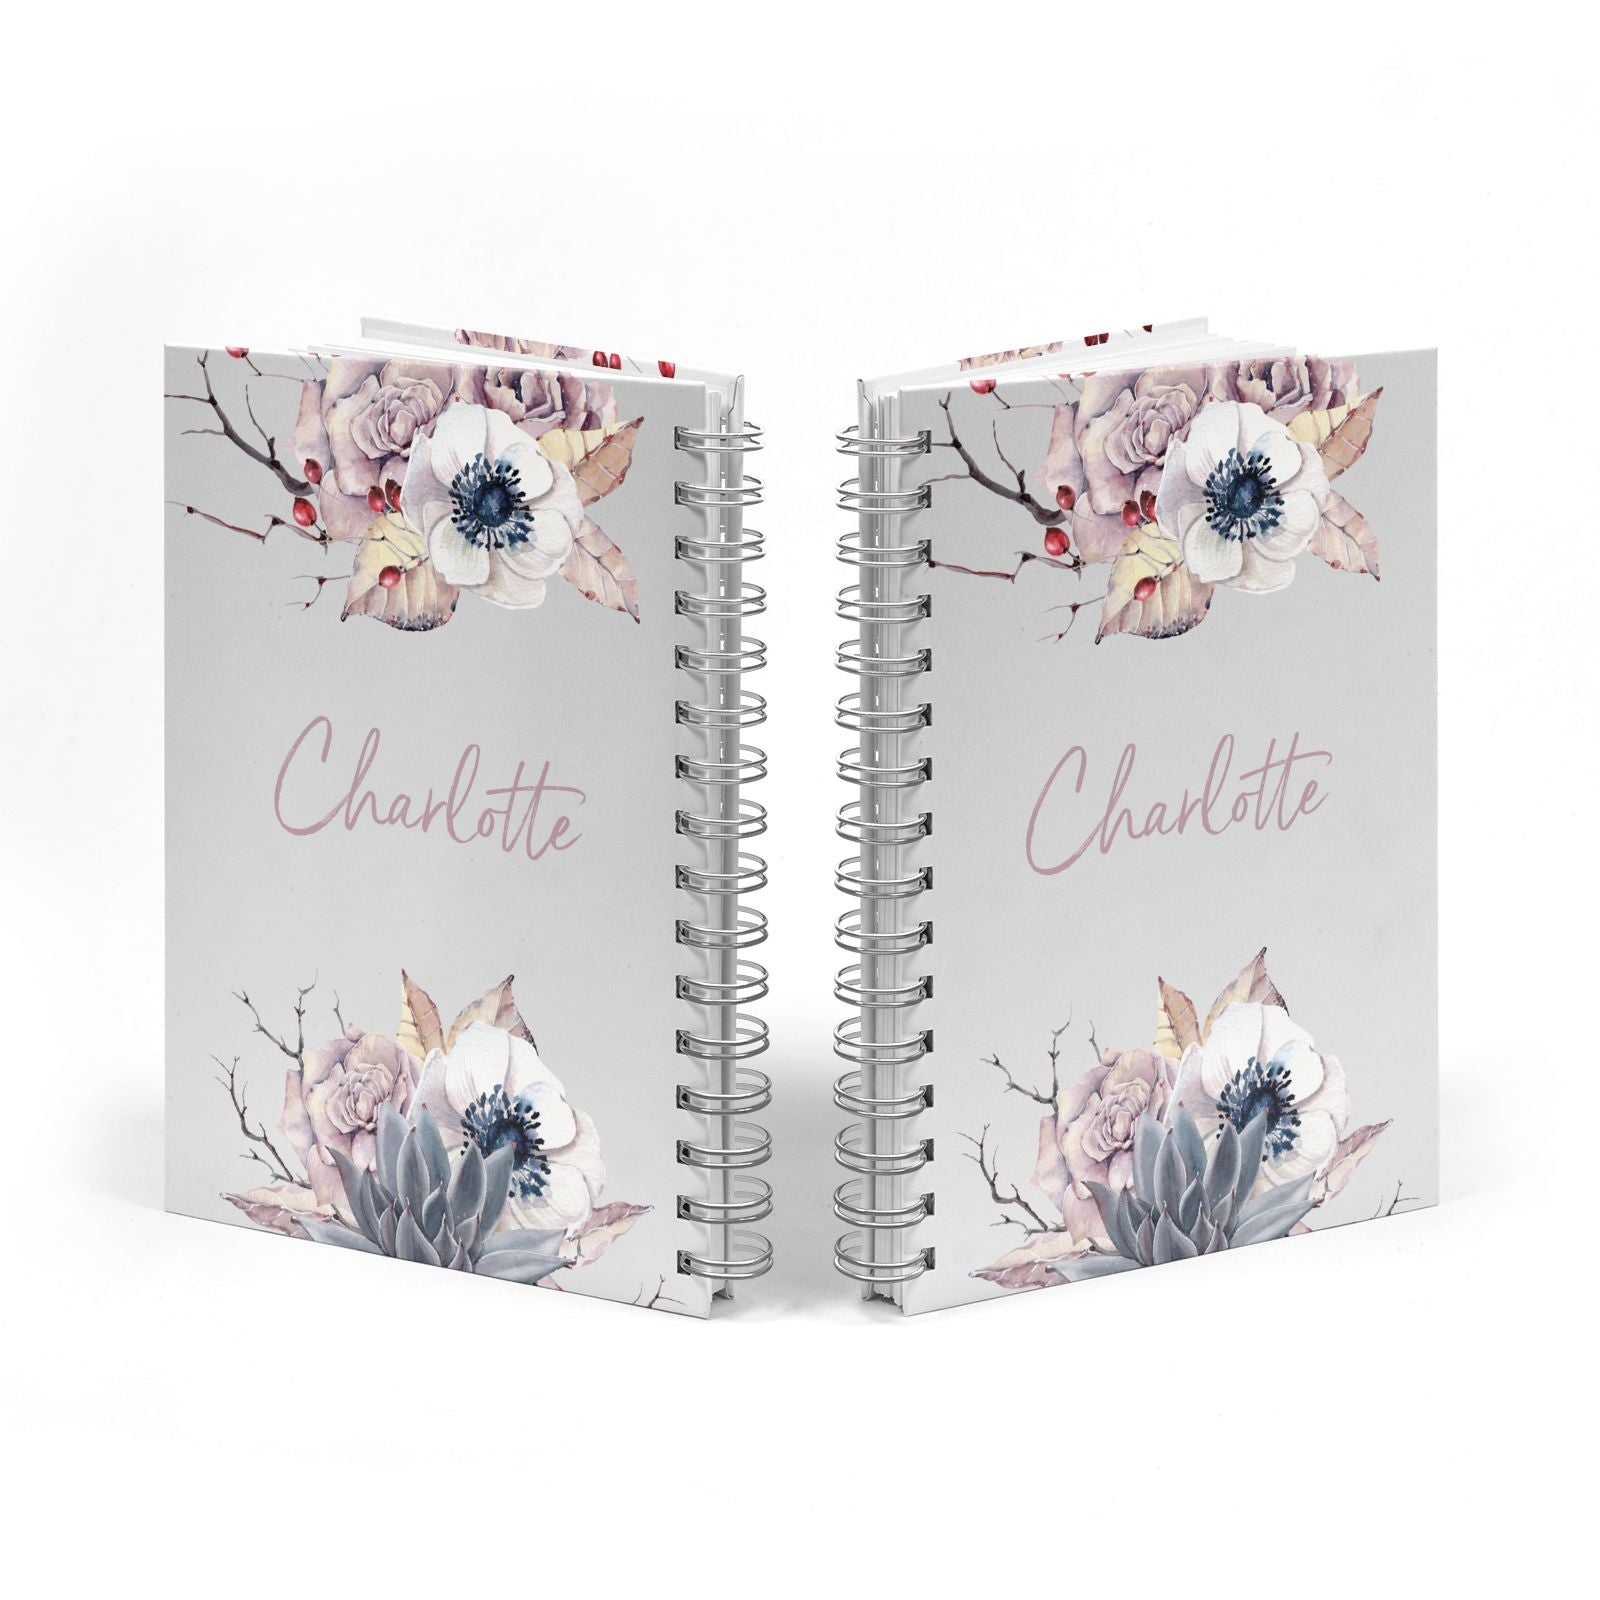 Personalised Autumn Floral Notebook with Silver Coil Spine View